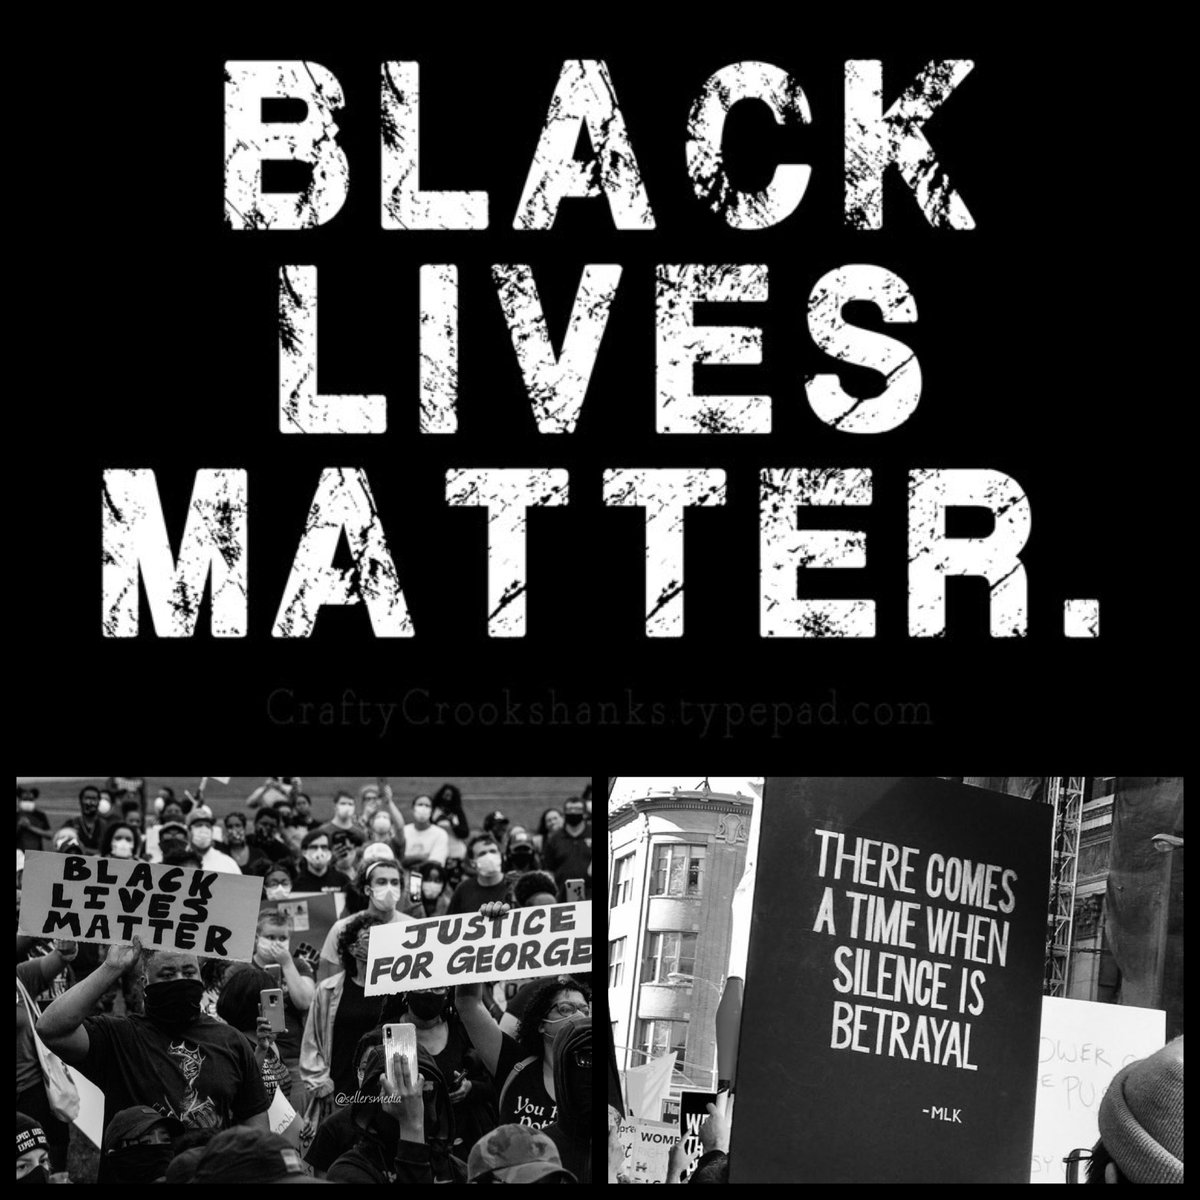 Our thoughts are with all of us protesting. Please be safe. Together We Rise #BlackLivesMatter #weareinthistogether pic.twitter.com/q8jA61THDY